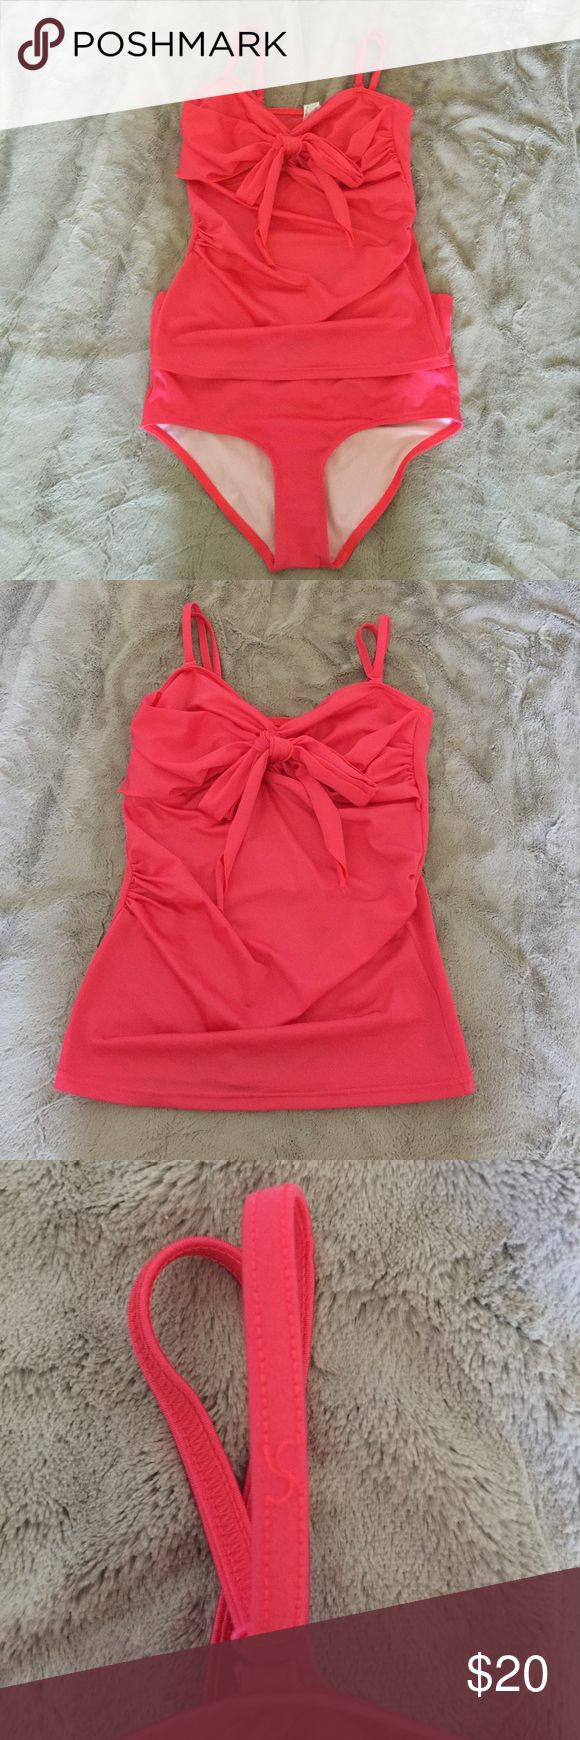 Asks Maternity two piece Tankini Bow Swimsuit Great condition only worn twice. Small amount unravelling on strap. Straps are adjustable and detachable. Bottoms can be worn folded over or regular depending on how much coverage you want. Asos Maternity Swim